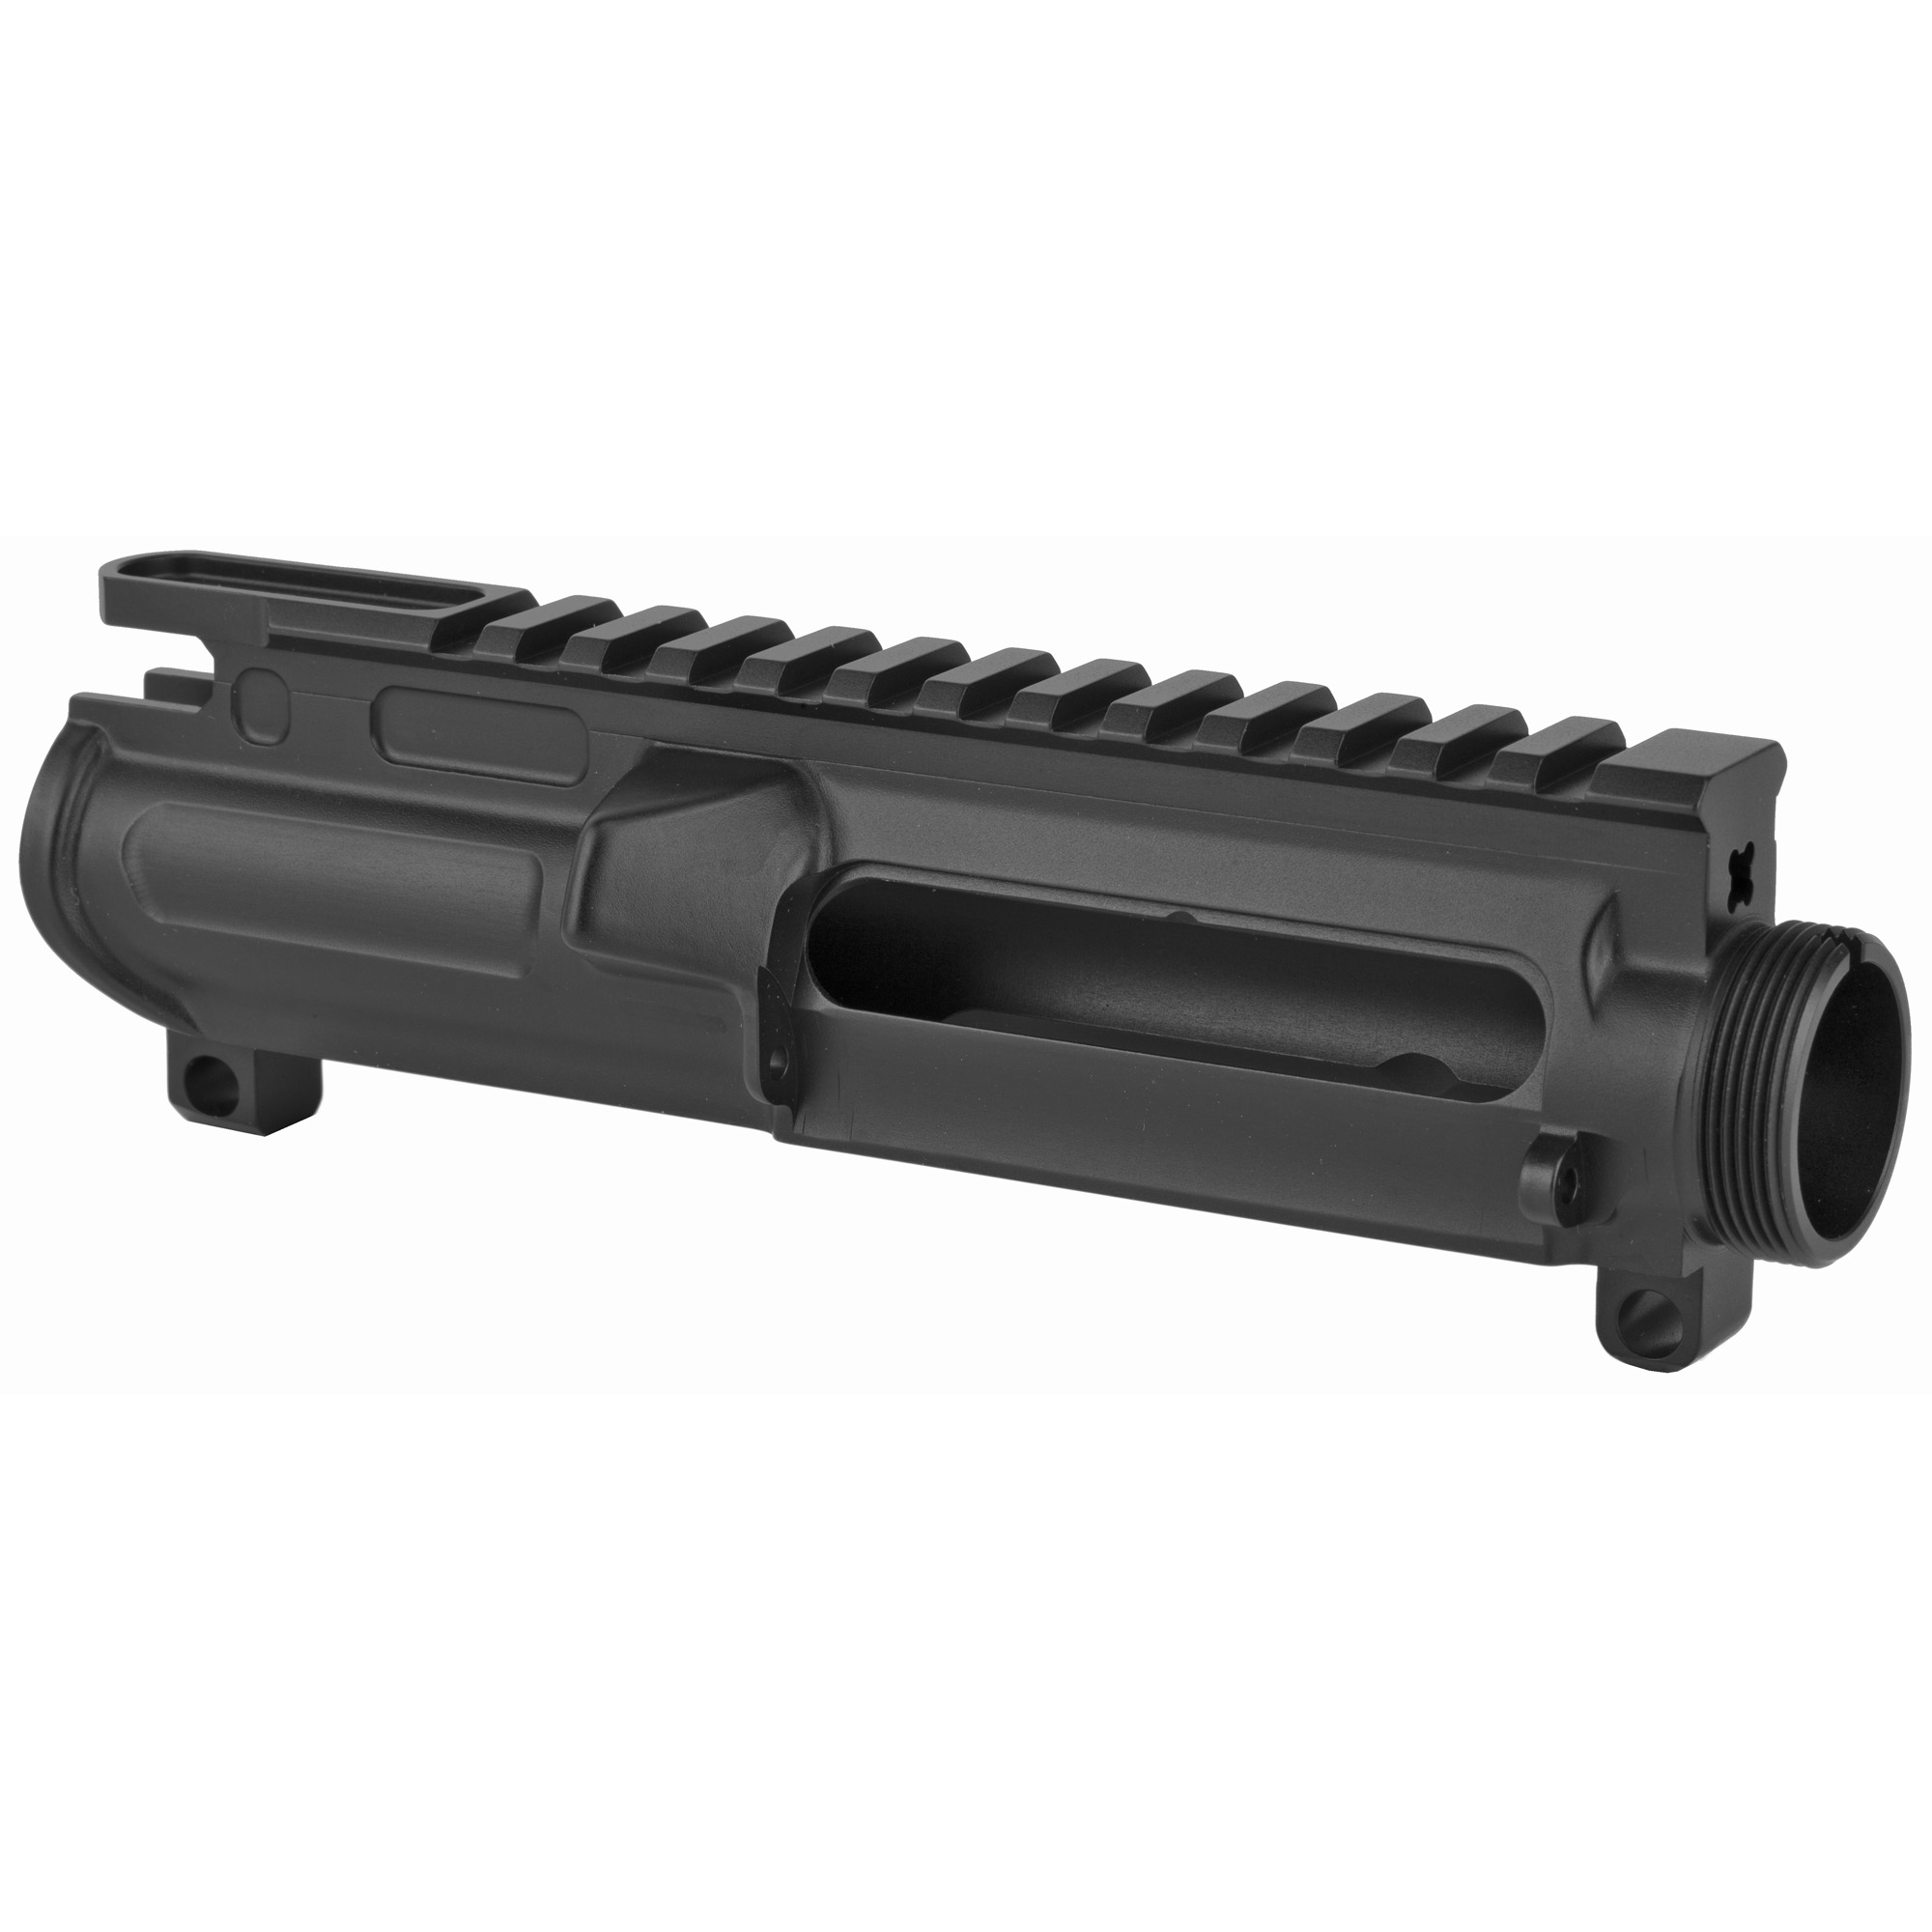 2A Armament Palouse-Lite AR15 Forged Upper Receiver - MSR Arms